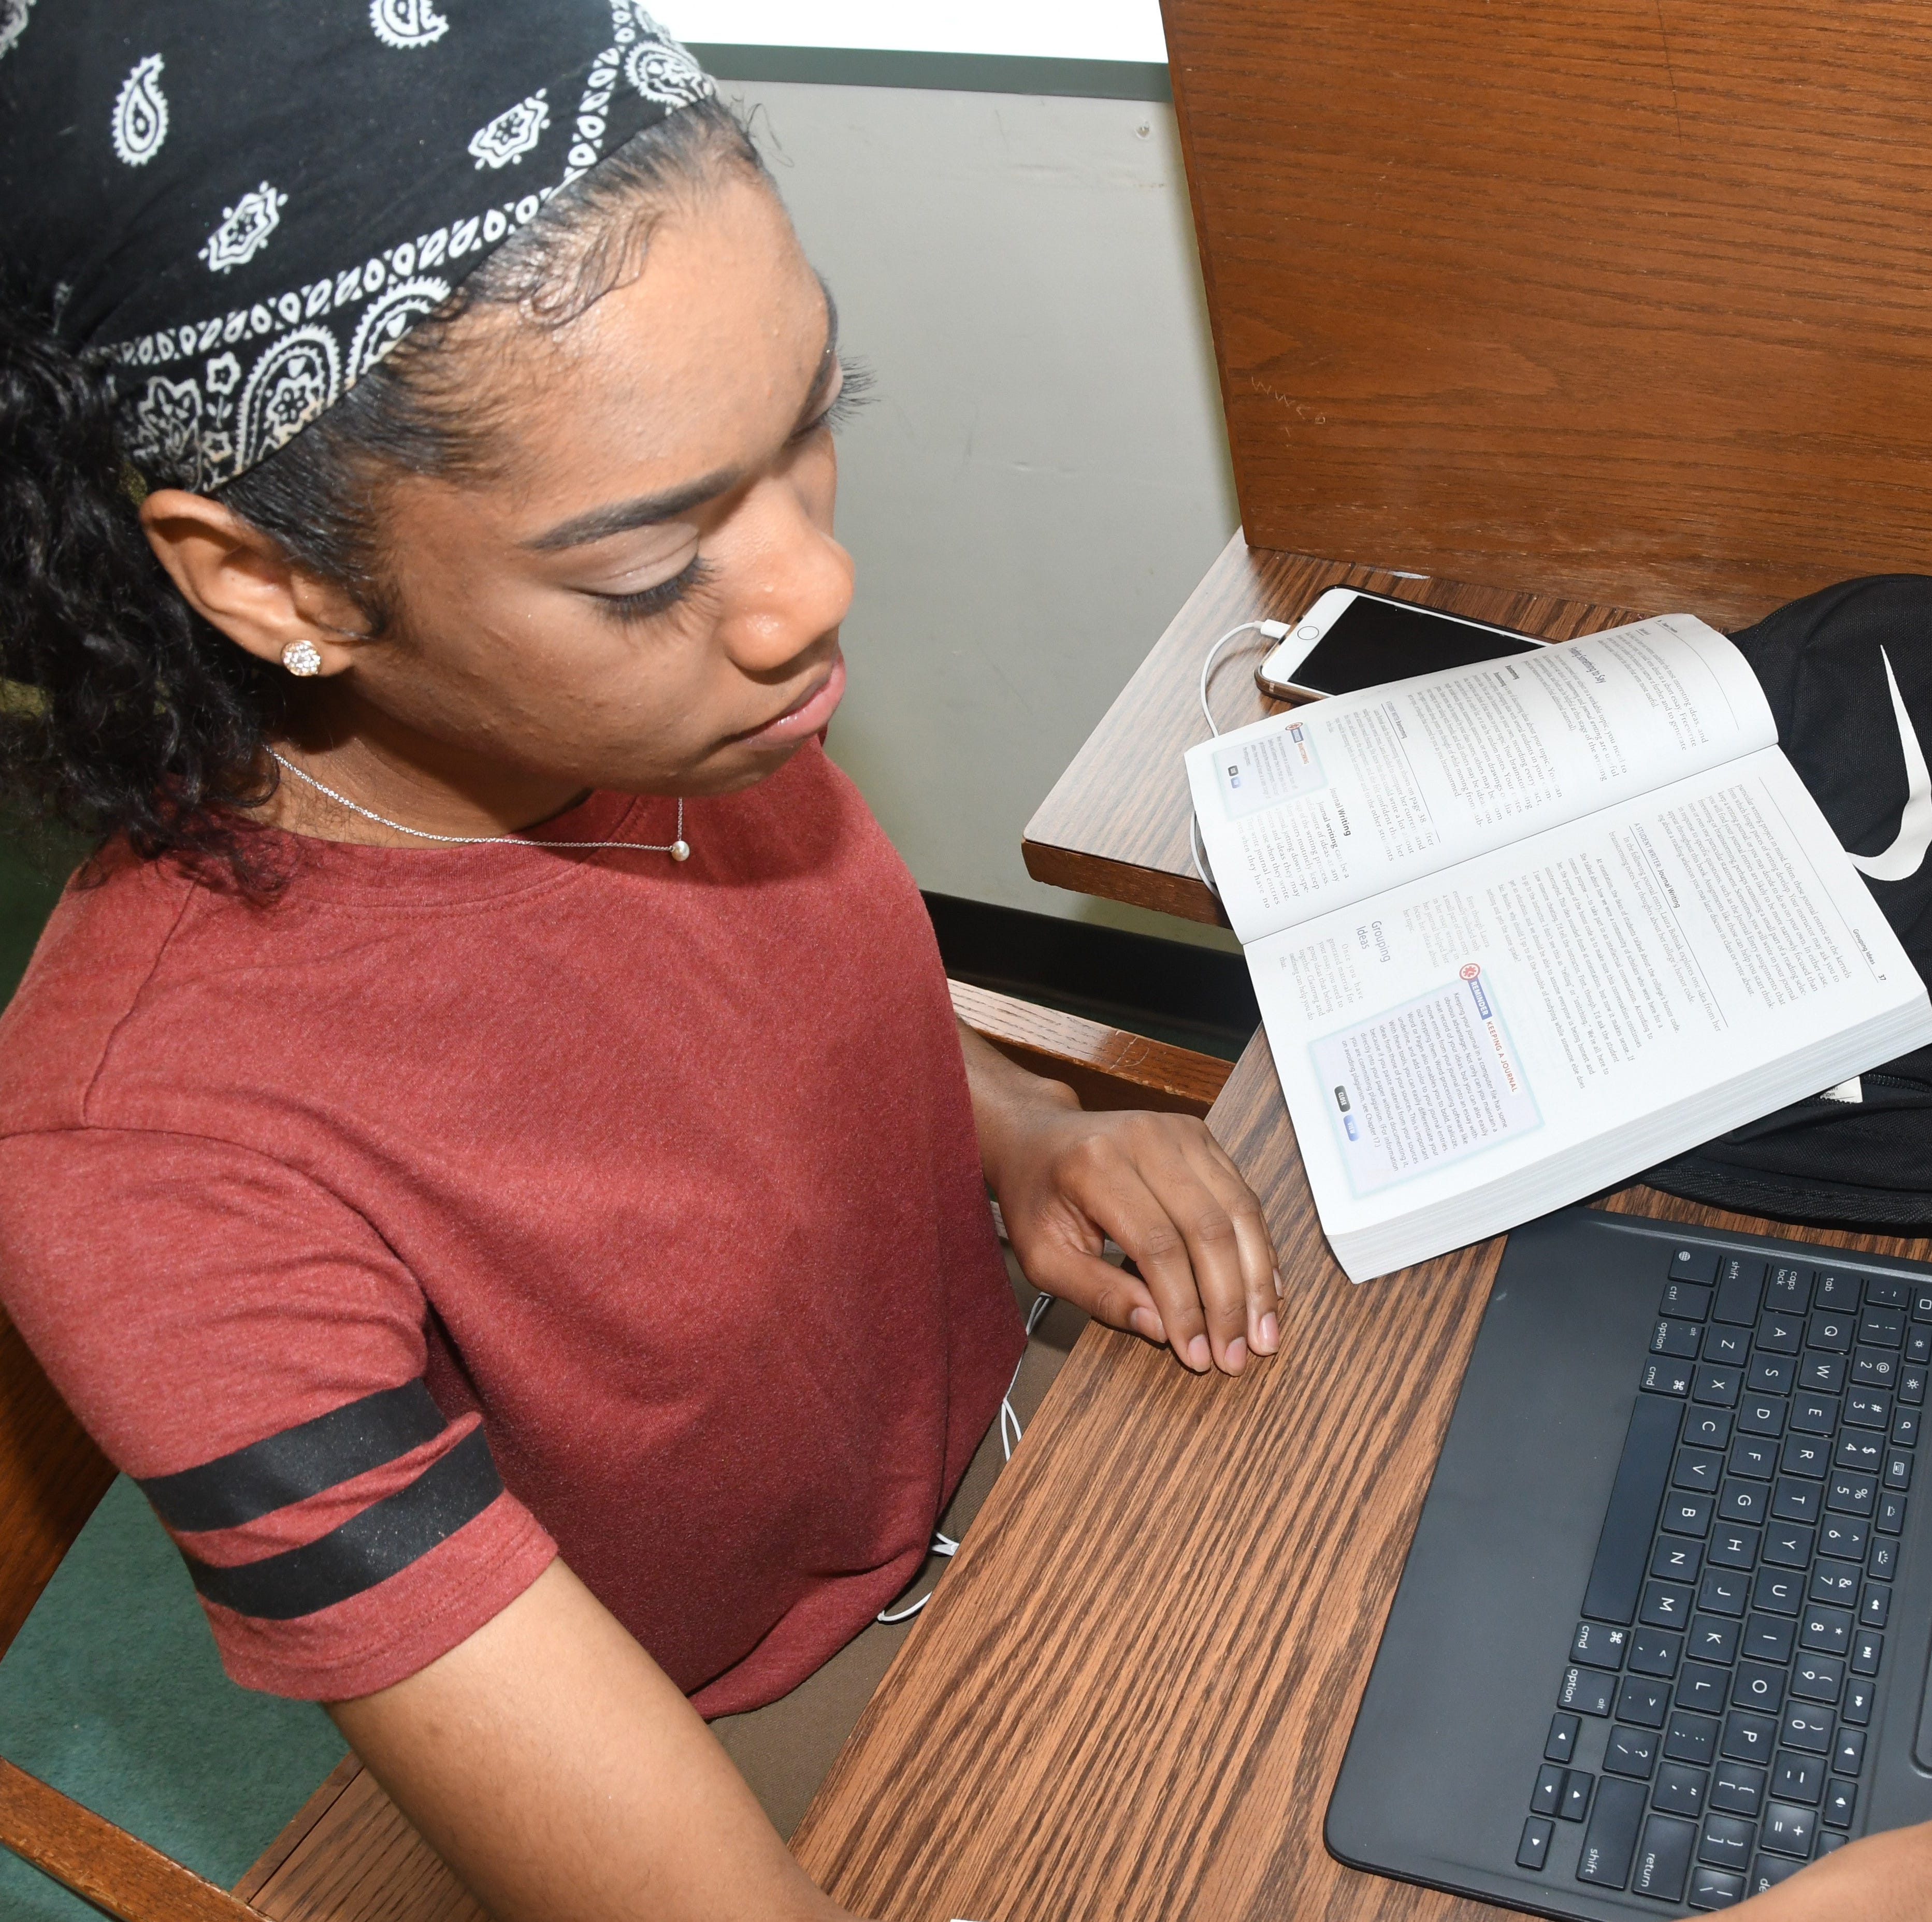 Freshmen at Delaware State University getting free iPad pros and MacBooks this year